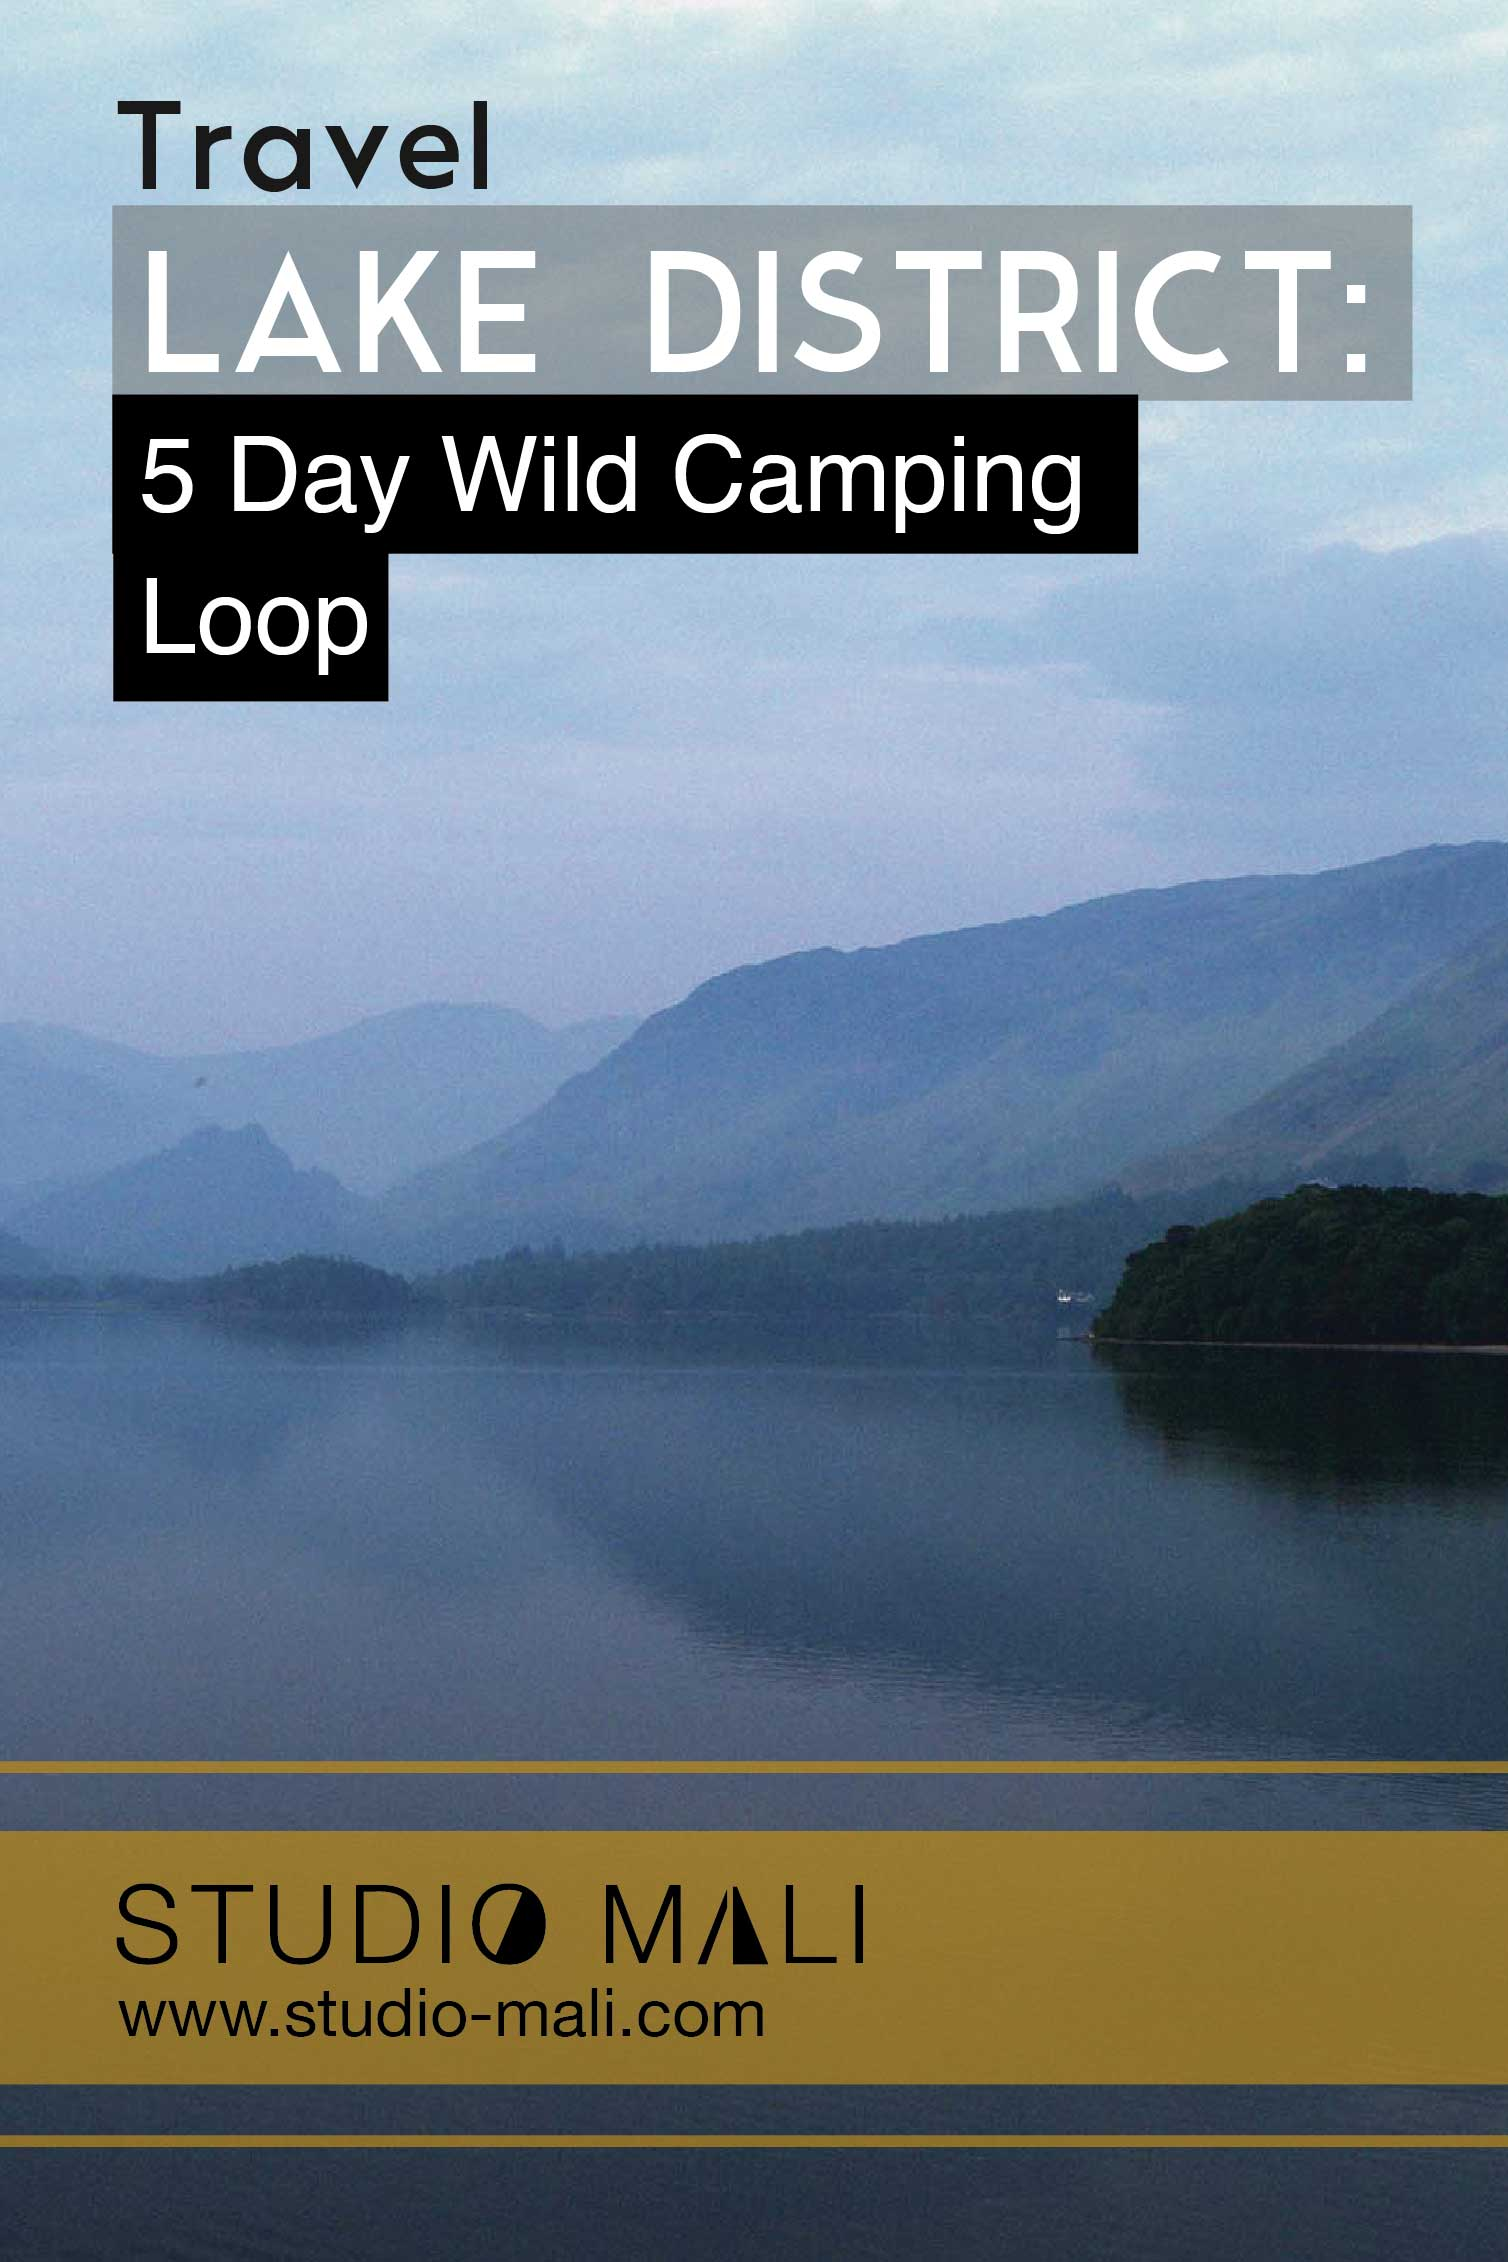 Travel - 5 Day Wild Camping Loop In The Lake District, By Studio Mali